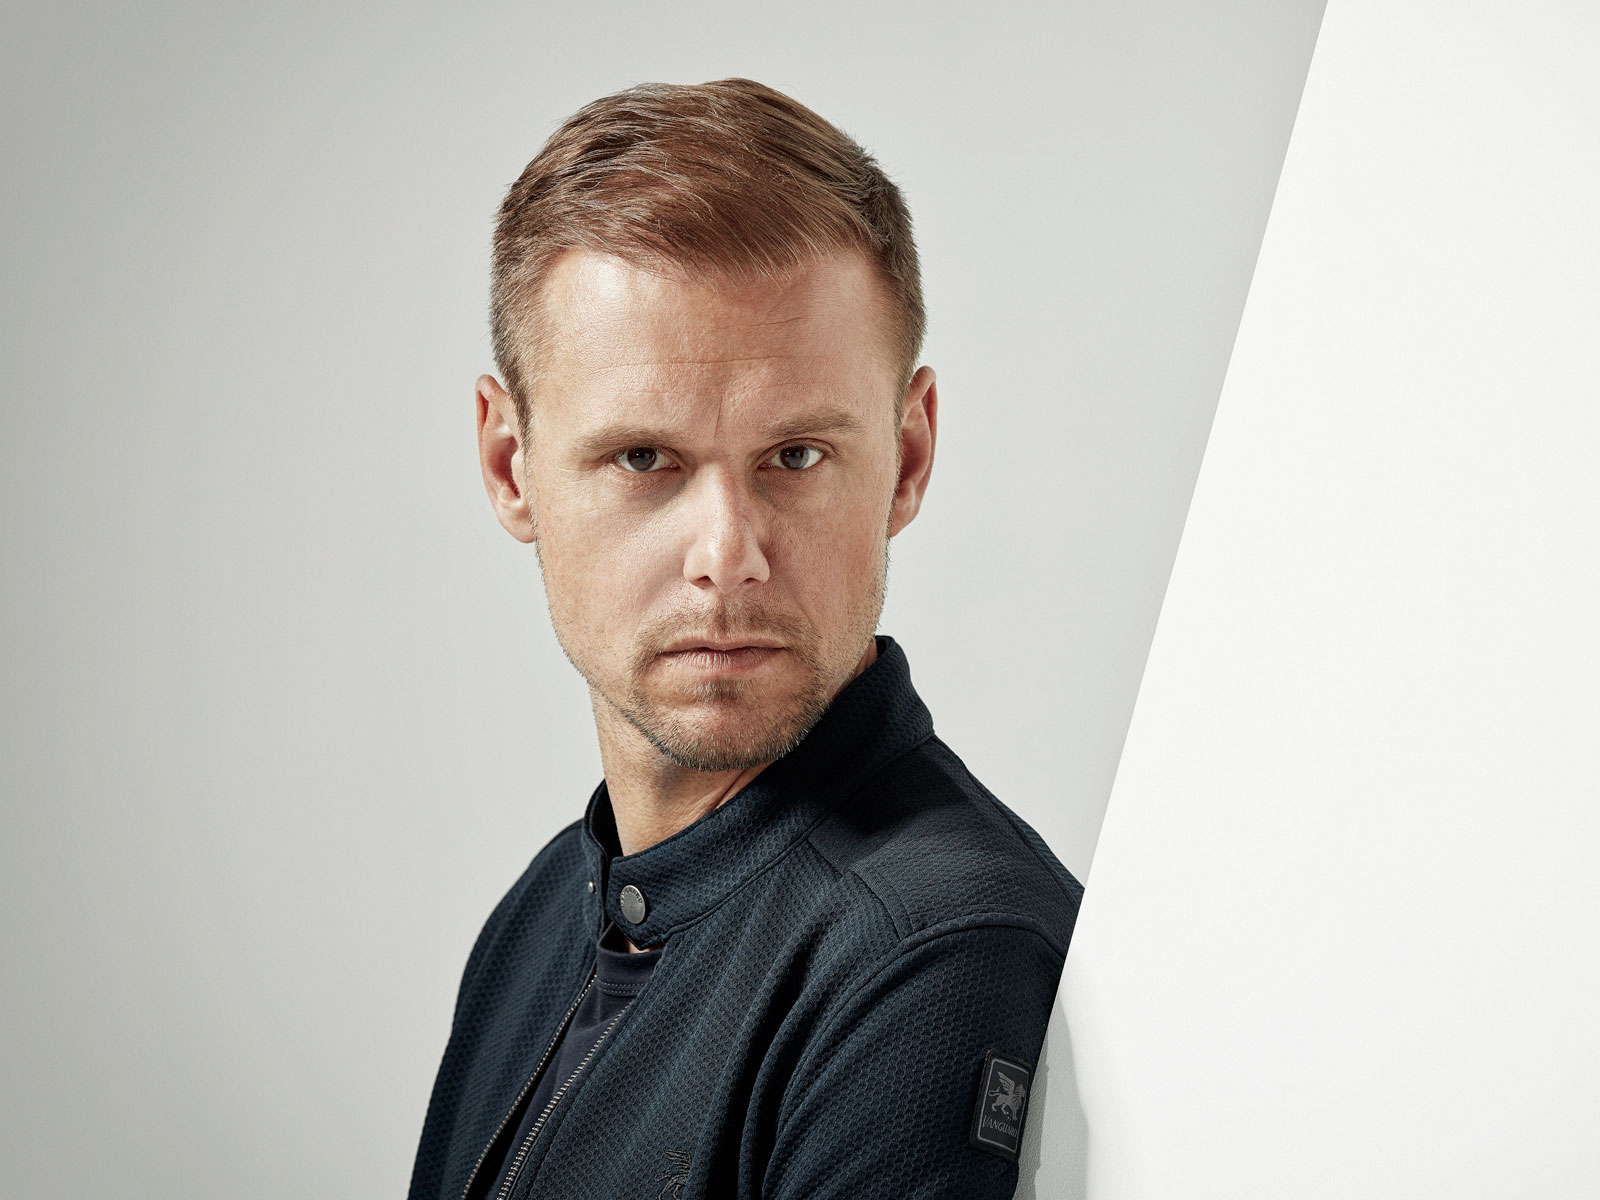 armin-van-buuren-balance-2019-album-feature-oz-edm